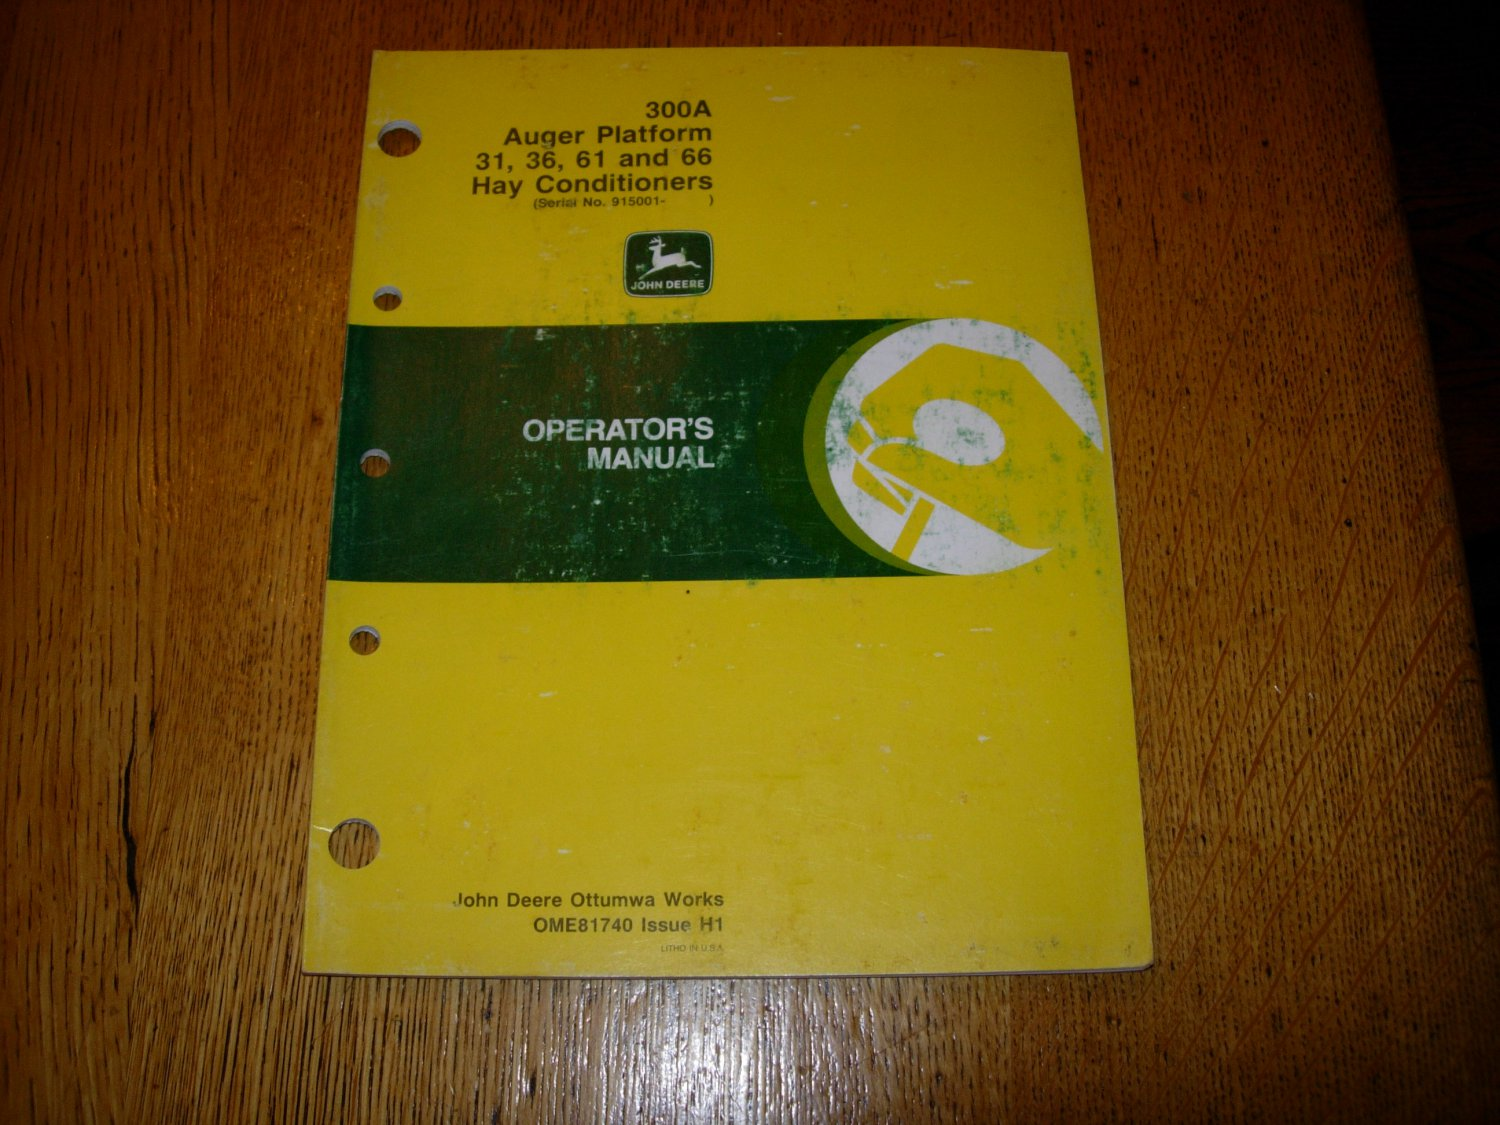 John Deere 300A Auger Platform 31,36,61 and 66 Hay Conditioners Operators Manual